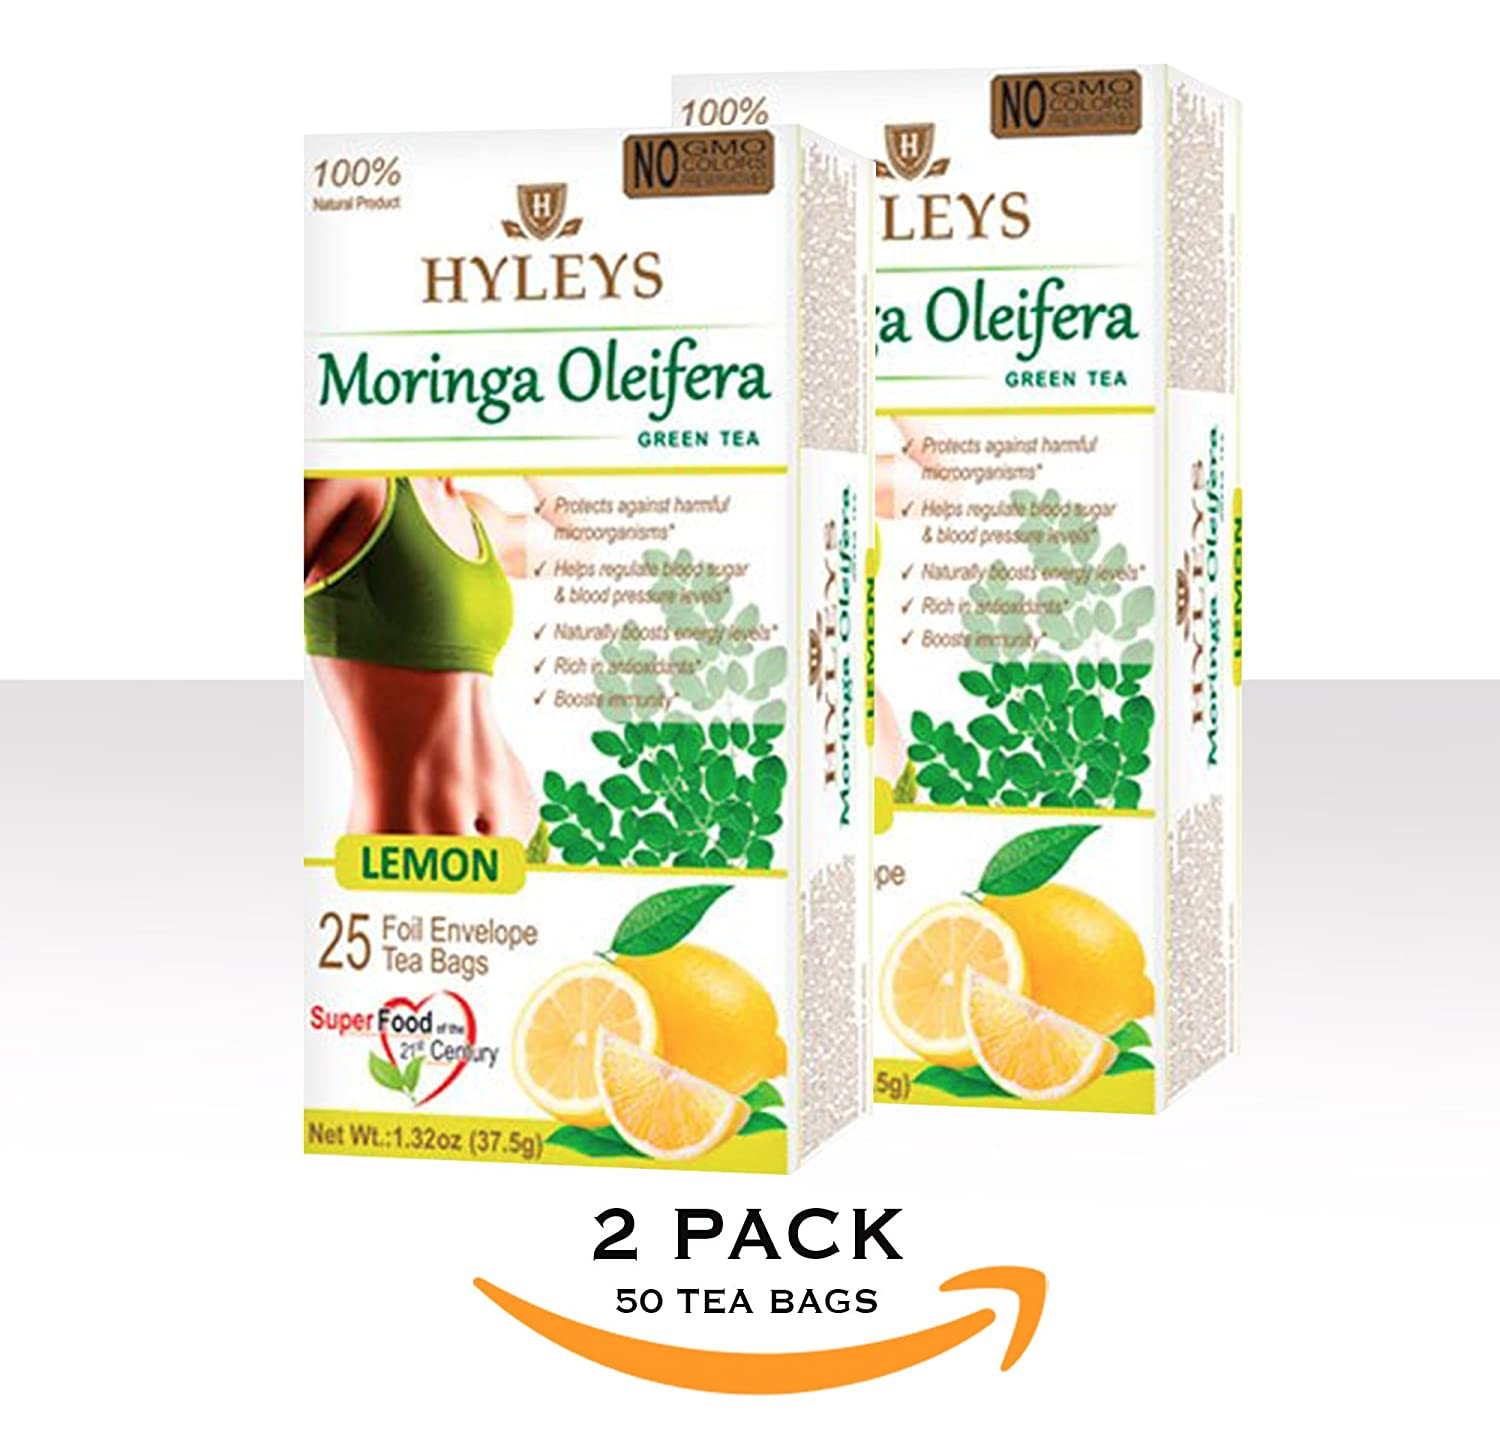 Hyleys 2 Pack 100 Natural Tea Bags Detox Slim Detoxslim Sleep Set 25 Foil Envelope Acai Berry Grocery Gourmet Food